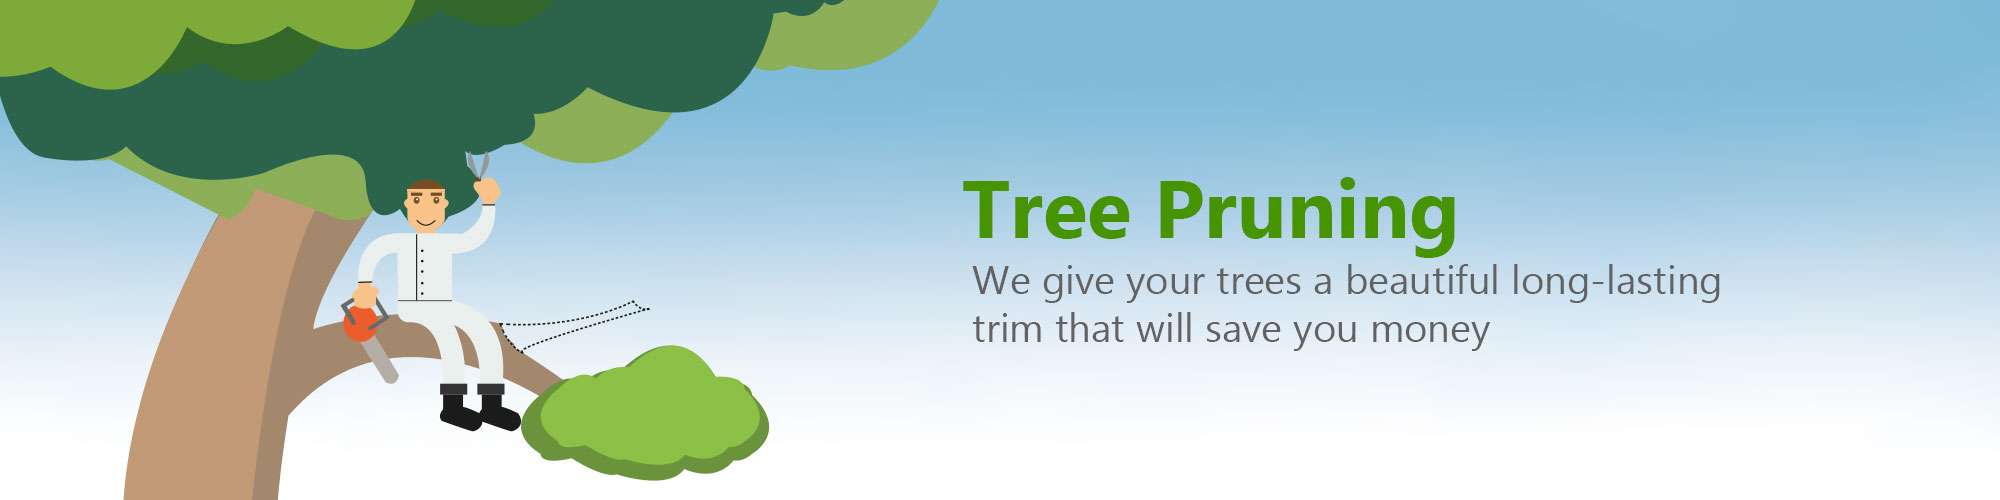 Tree pruning services in london photo of cartoon man pruning tree branches